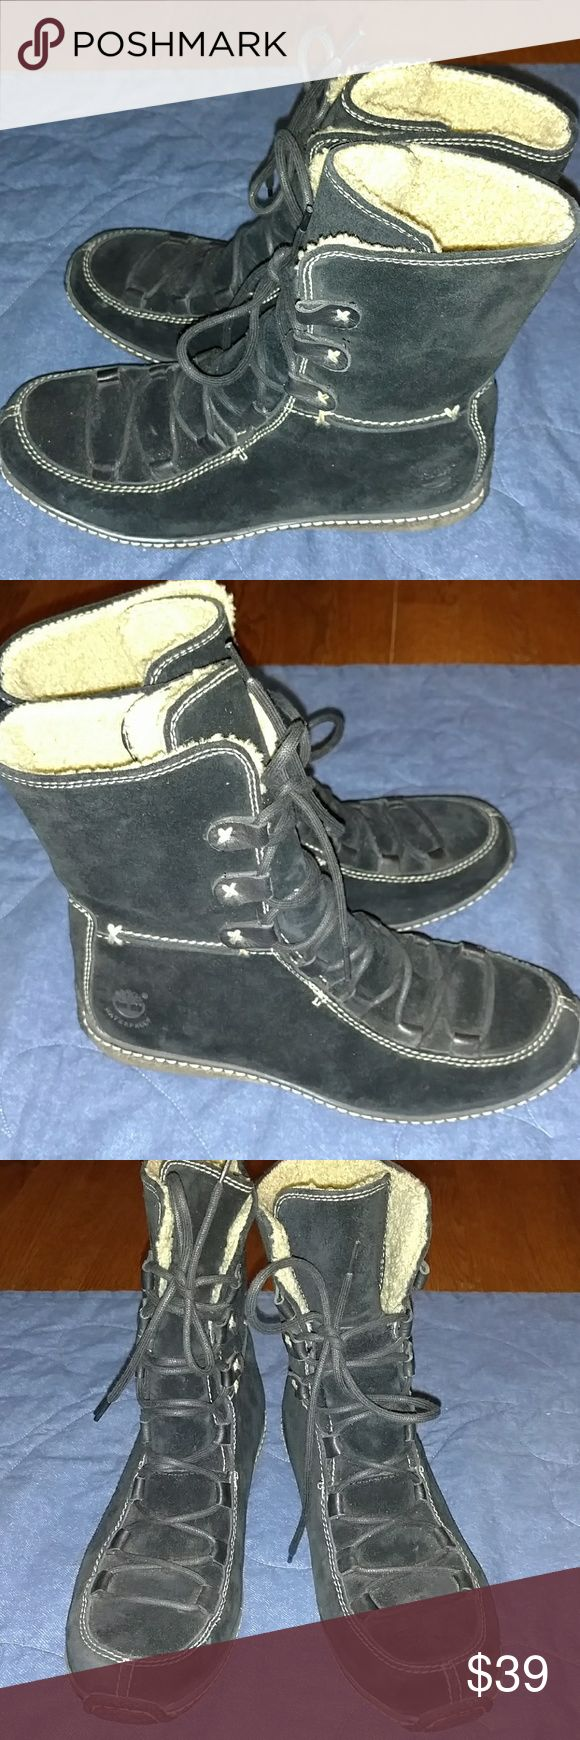 Timberland waterproof boots Like new condition. Leather. You won't be able to wear thick socks or they would be hard to get on. If you have a narrow foot these would be perfect Timberland Shoes Winter & Rain Boots